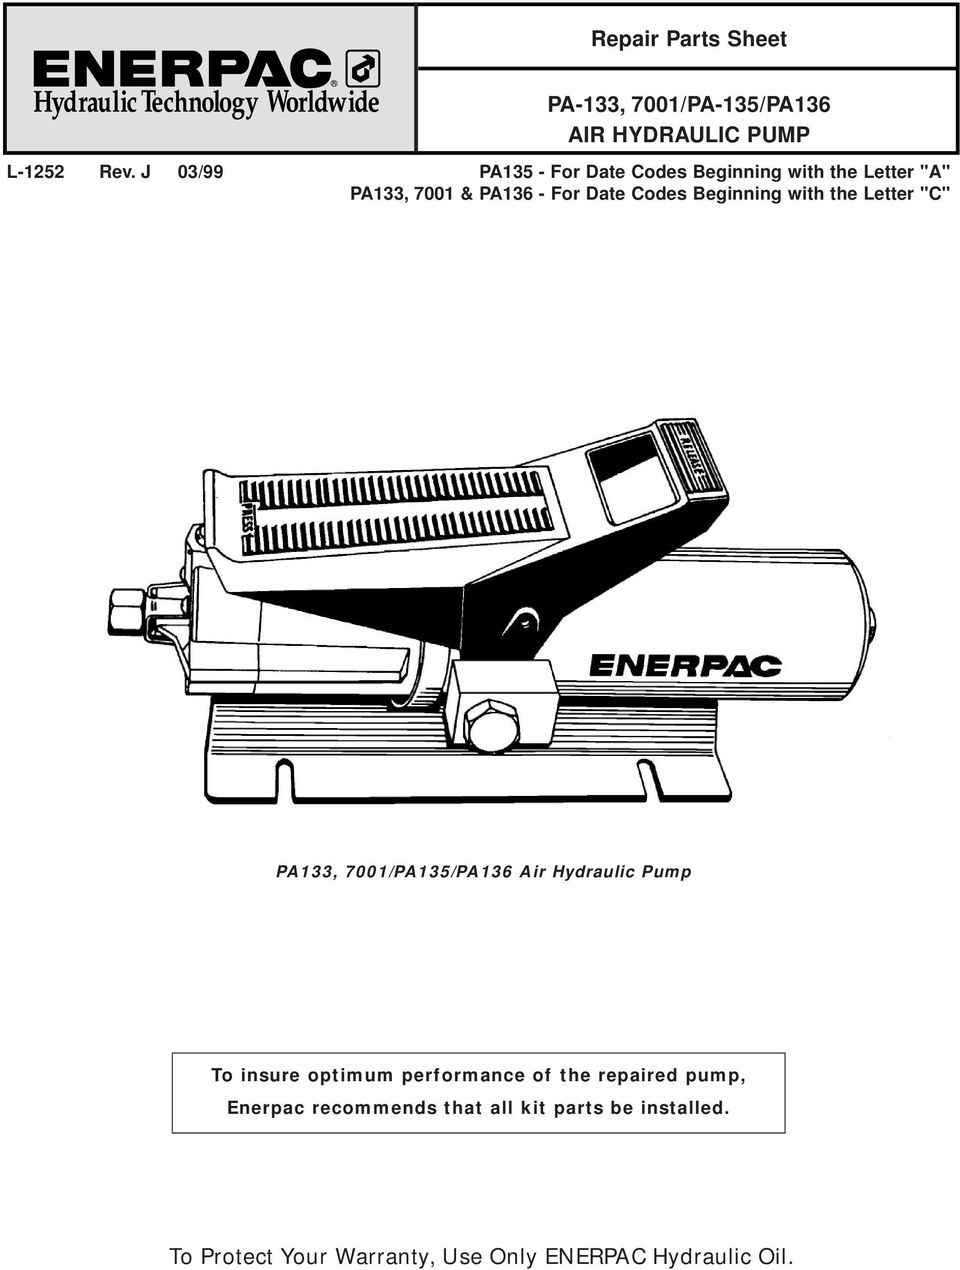 To Protect Your Warranty, Use Only ENERPAC Hydraulic Oil  - PDF